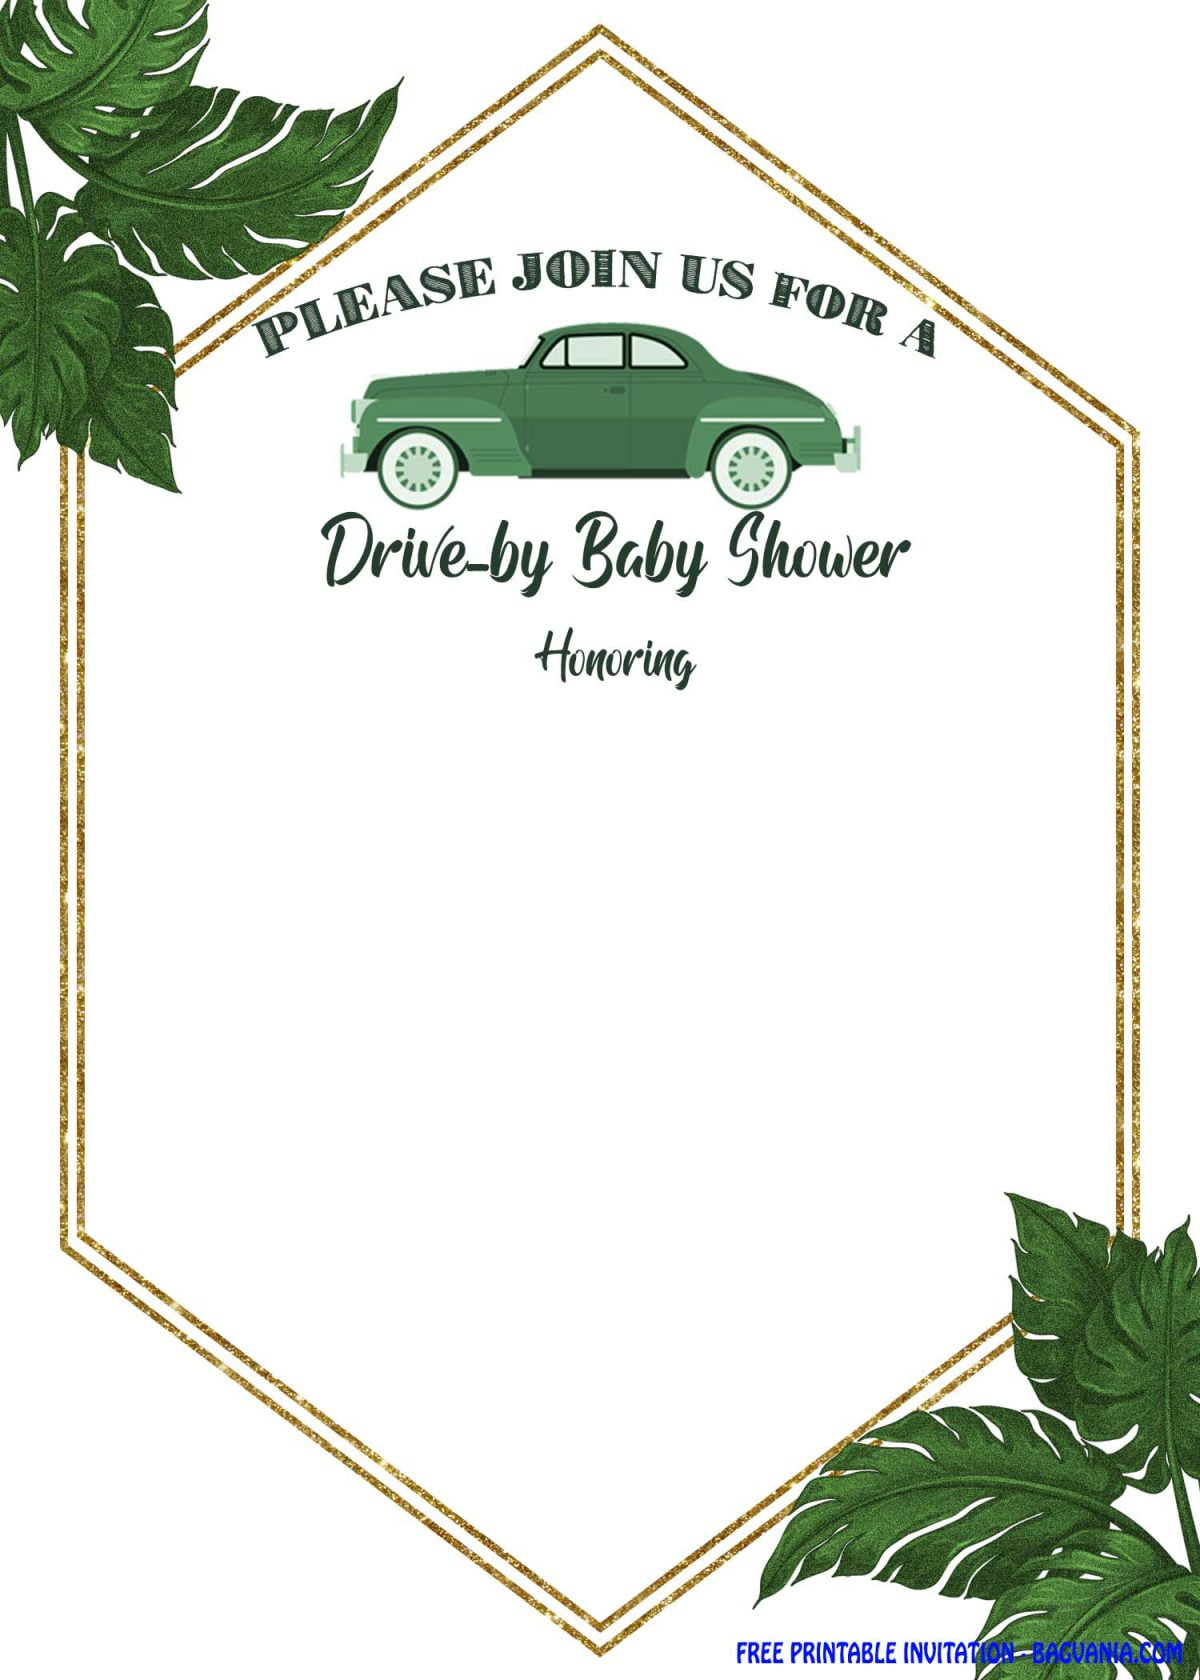 Free Printable Greenery Hexagonal Drive By Invitation Templates With